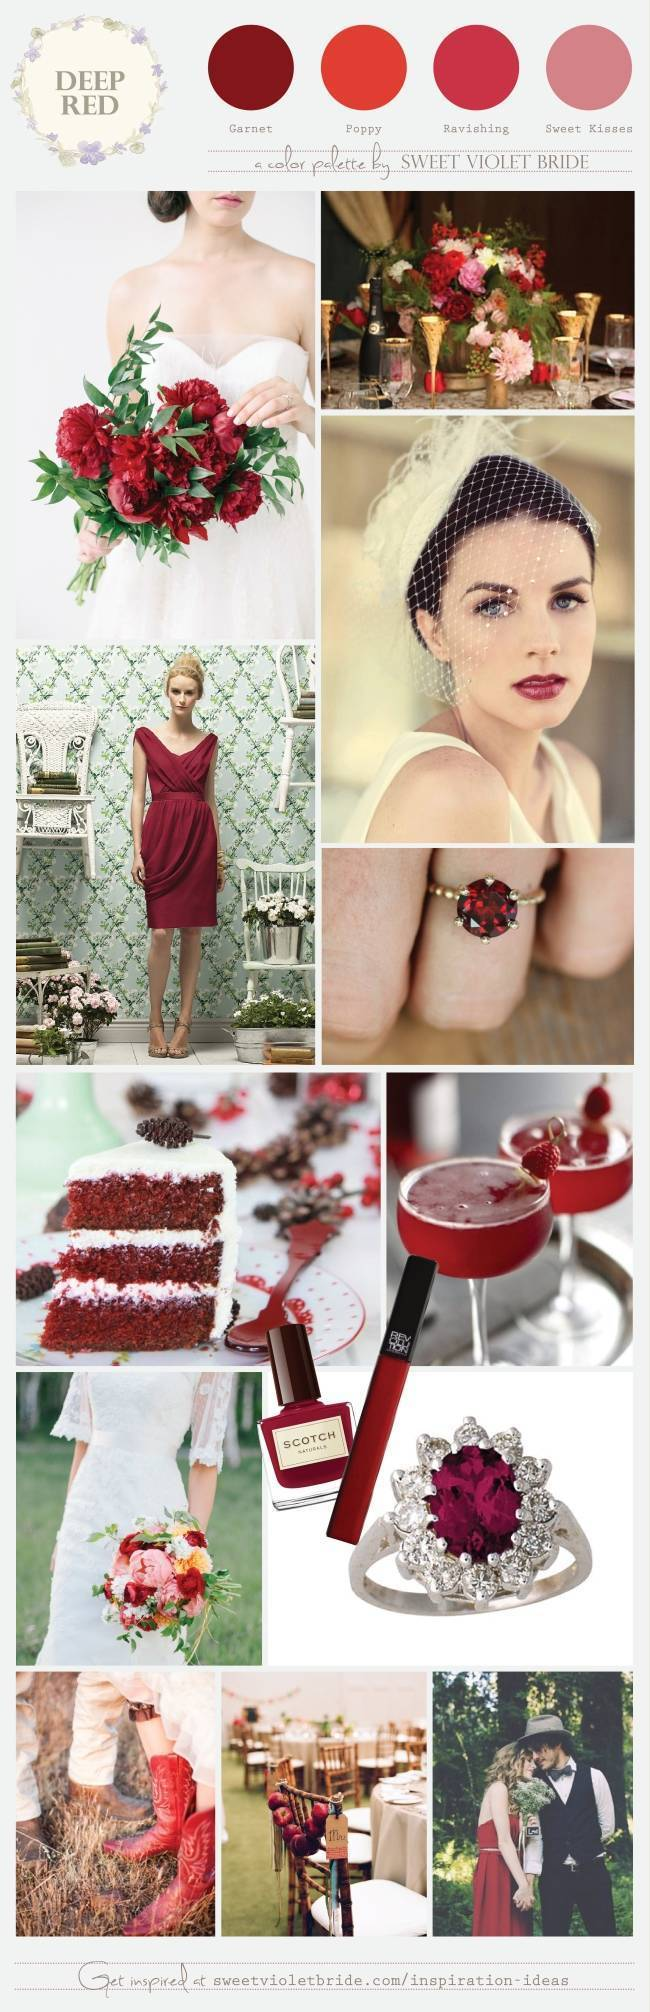 Wedding Color Palette: Deep Red